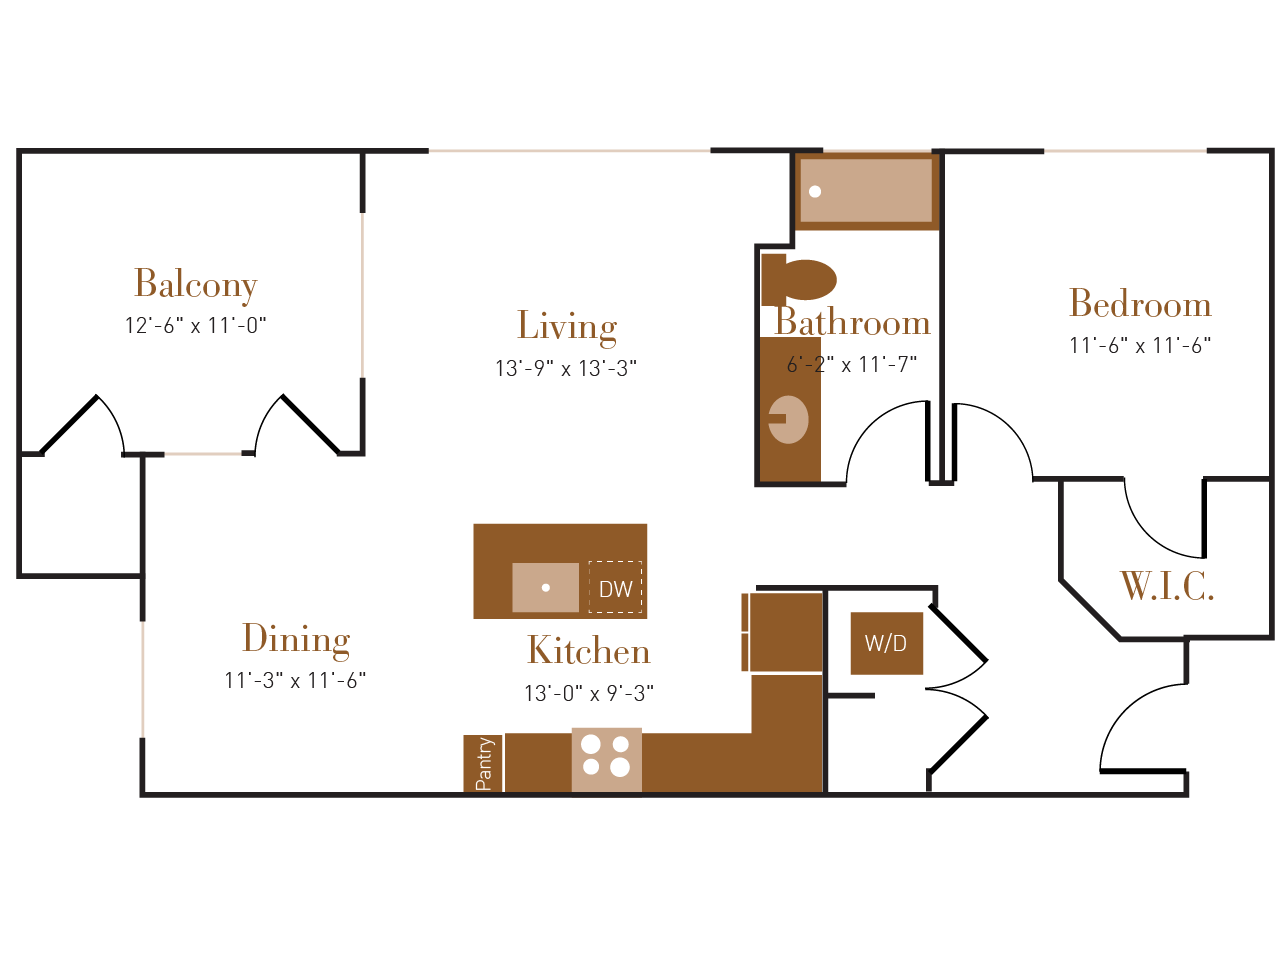 A Three floor plan diagram. One bedroom, one bathroom, an open kitchen dining and living area, a balcony, and a washer dryer.